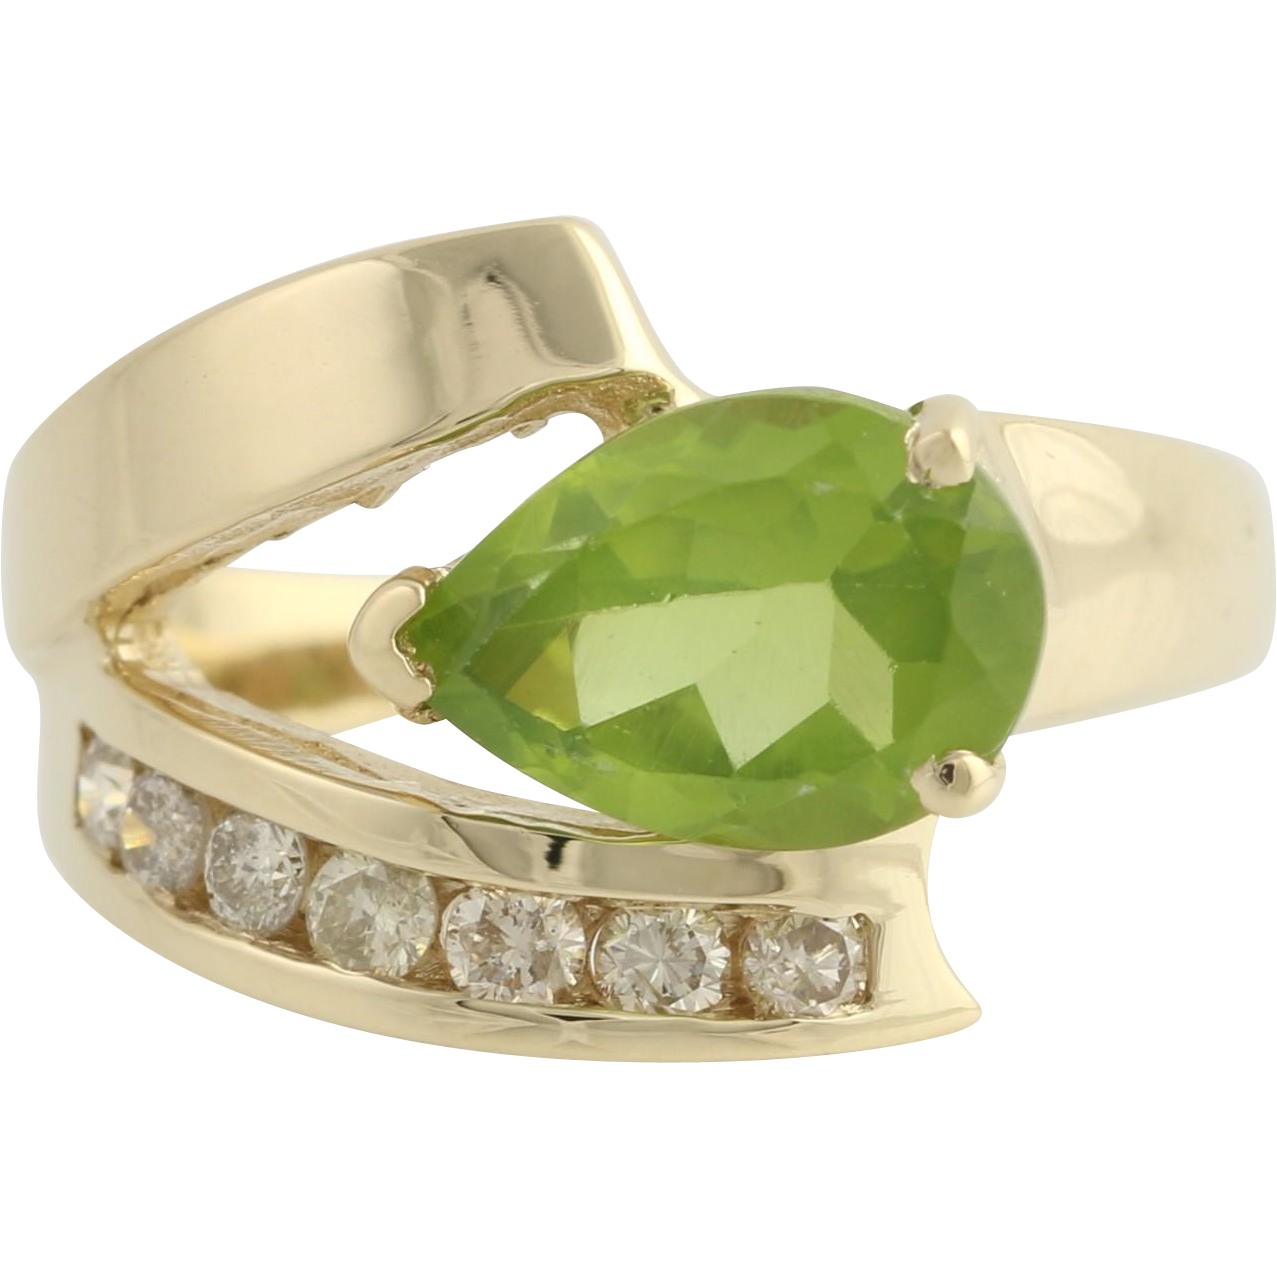 Peridot & Diamond Cocktail Ring - 14k Yellow Gold 6 1/2 Genuine 1.75ctw